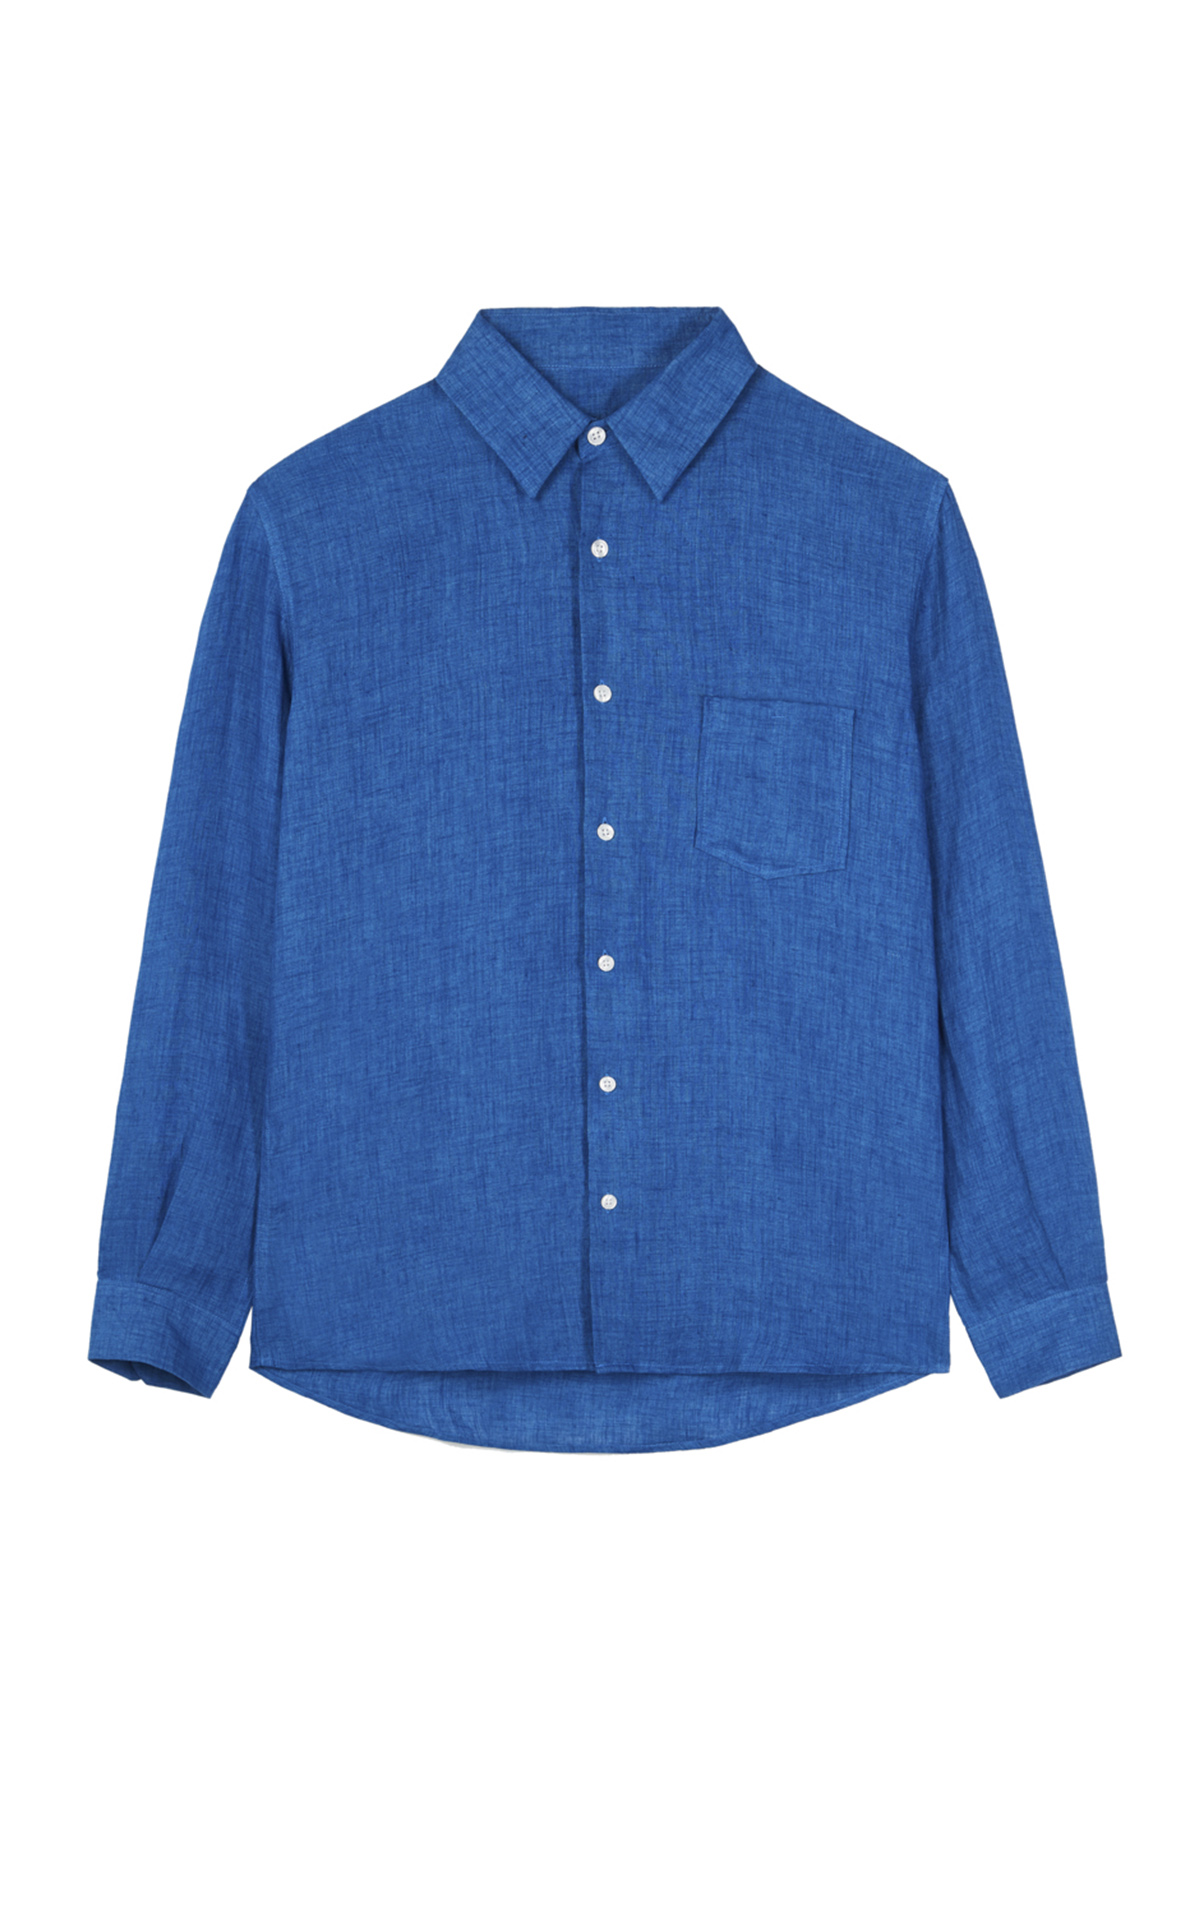 Blue linen shirt Adolfo Dominguez